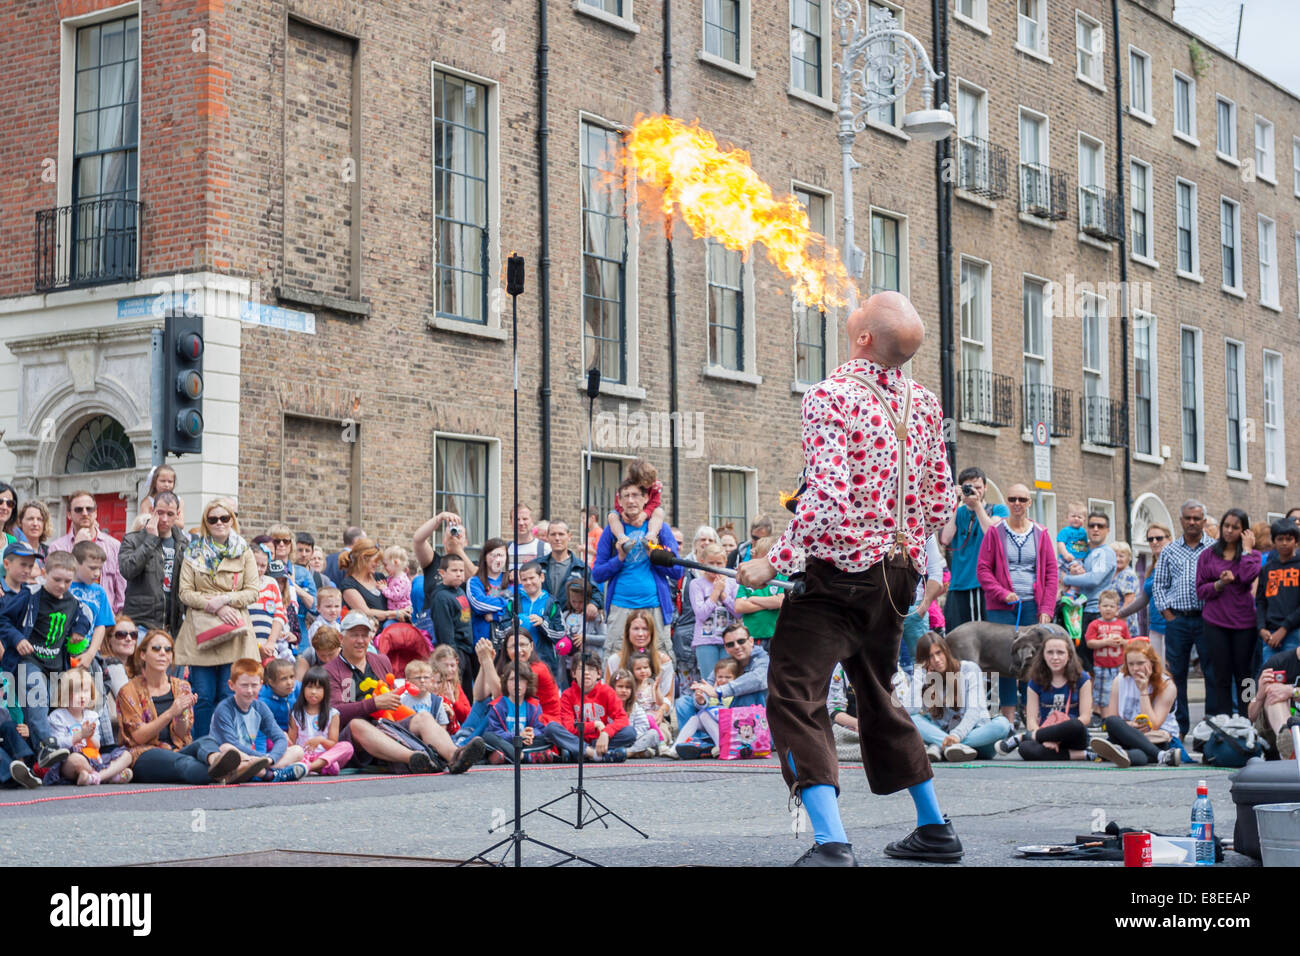 Dublin, Ireland - July 13: Fire-eater spiting fire in The Layal Healthcate City Spectacular Festival at Merrion - Stock Image